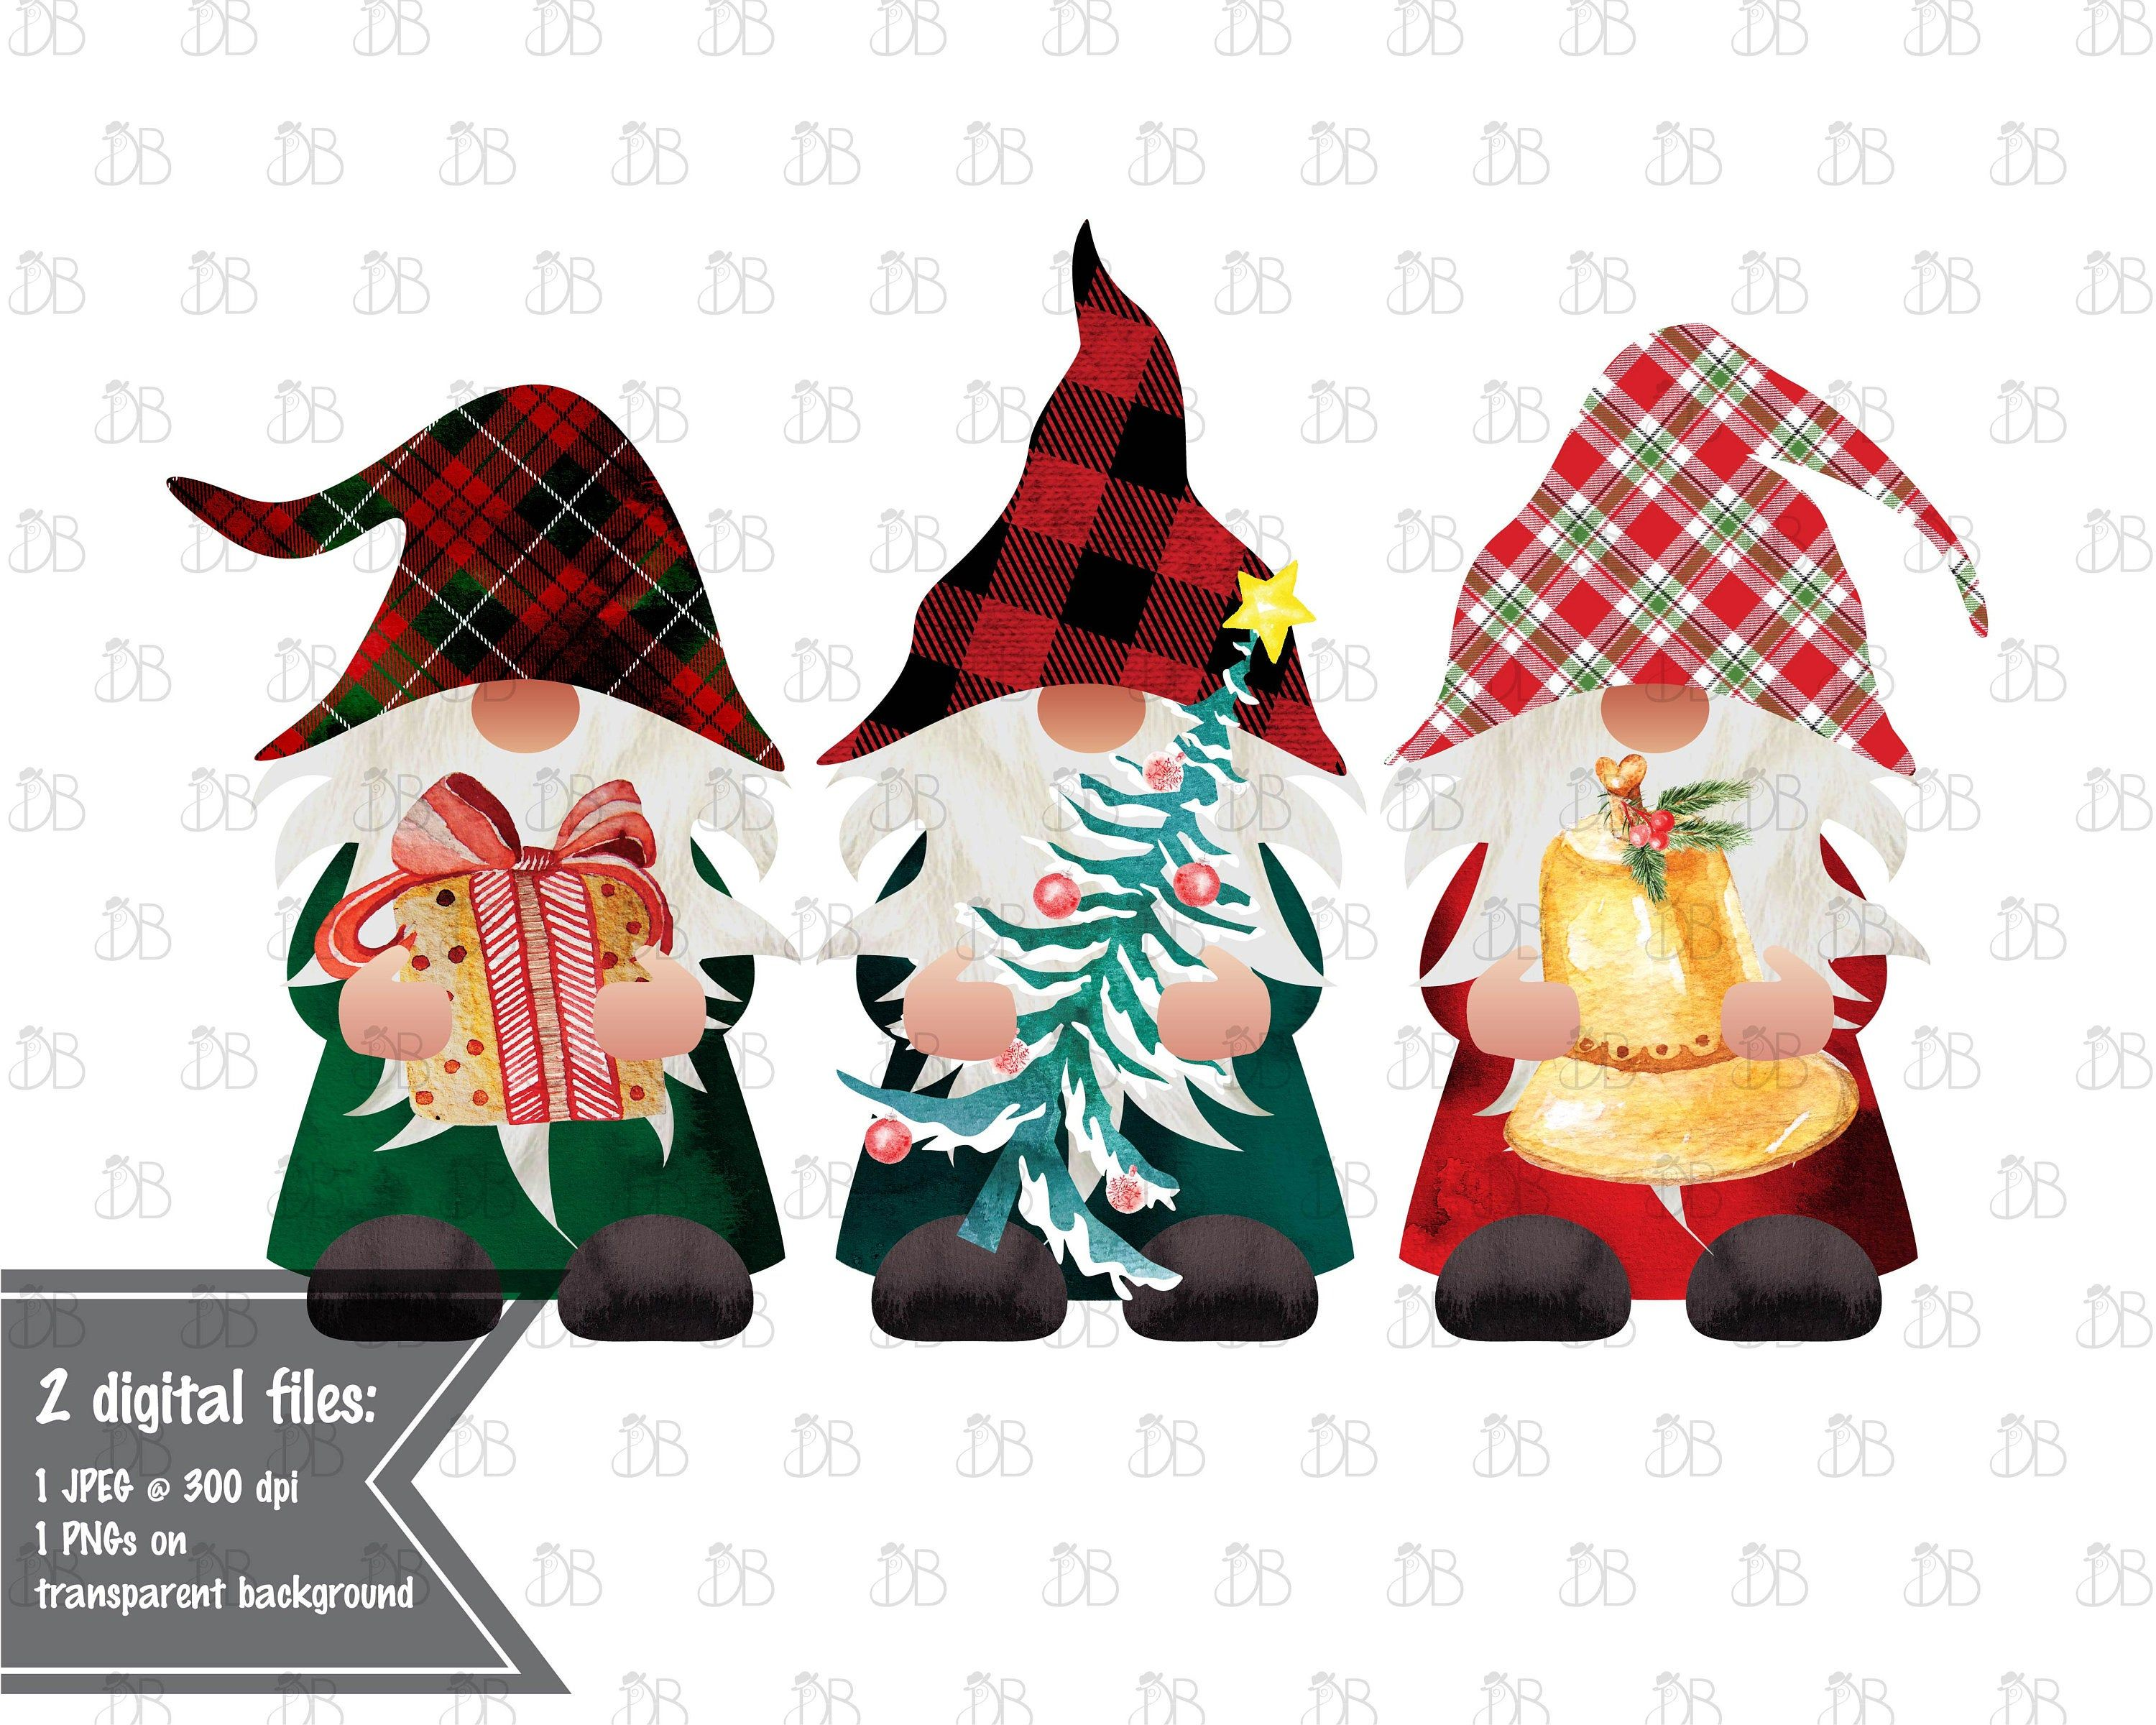 Merry Christmas Jpeg 2020 Christmas Gnomes   Merry Christmas   Jpeg PNG Design  Sublimation